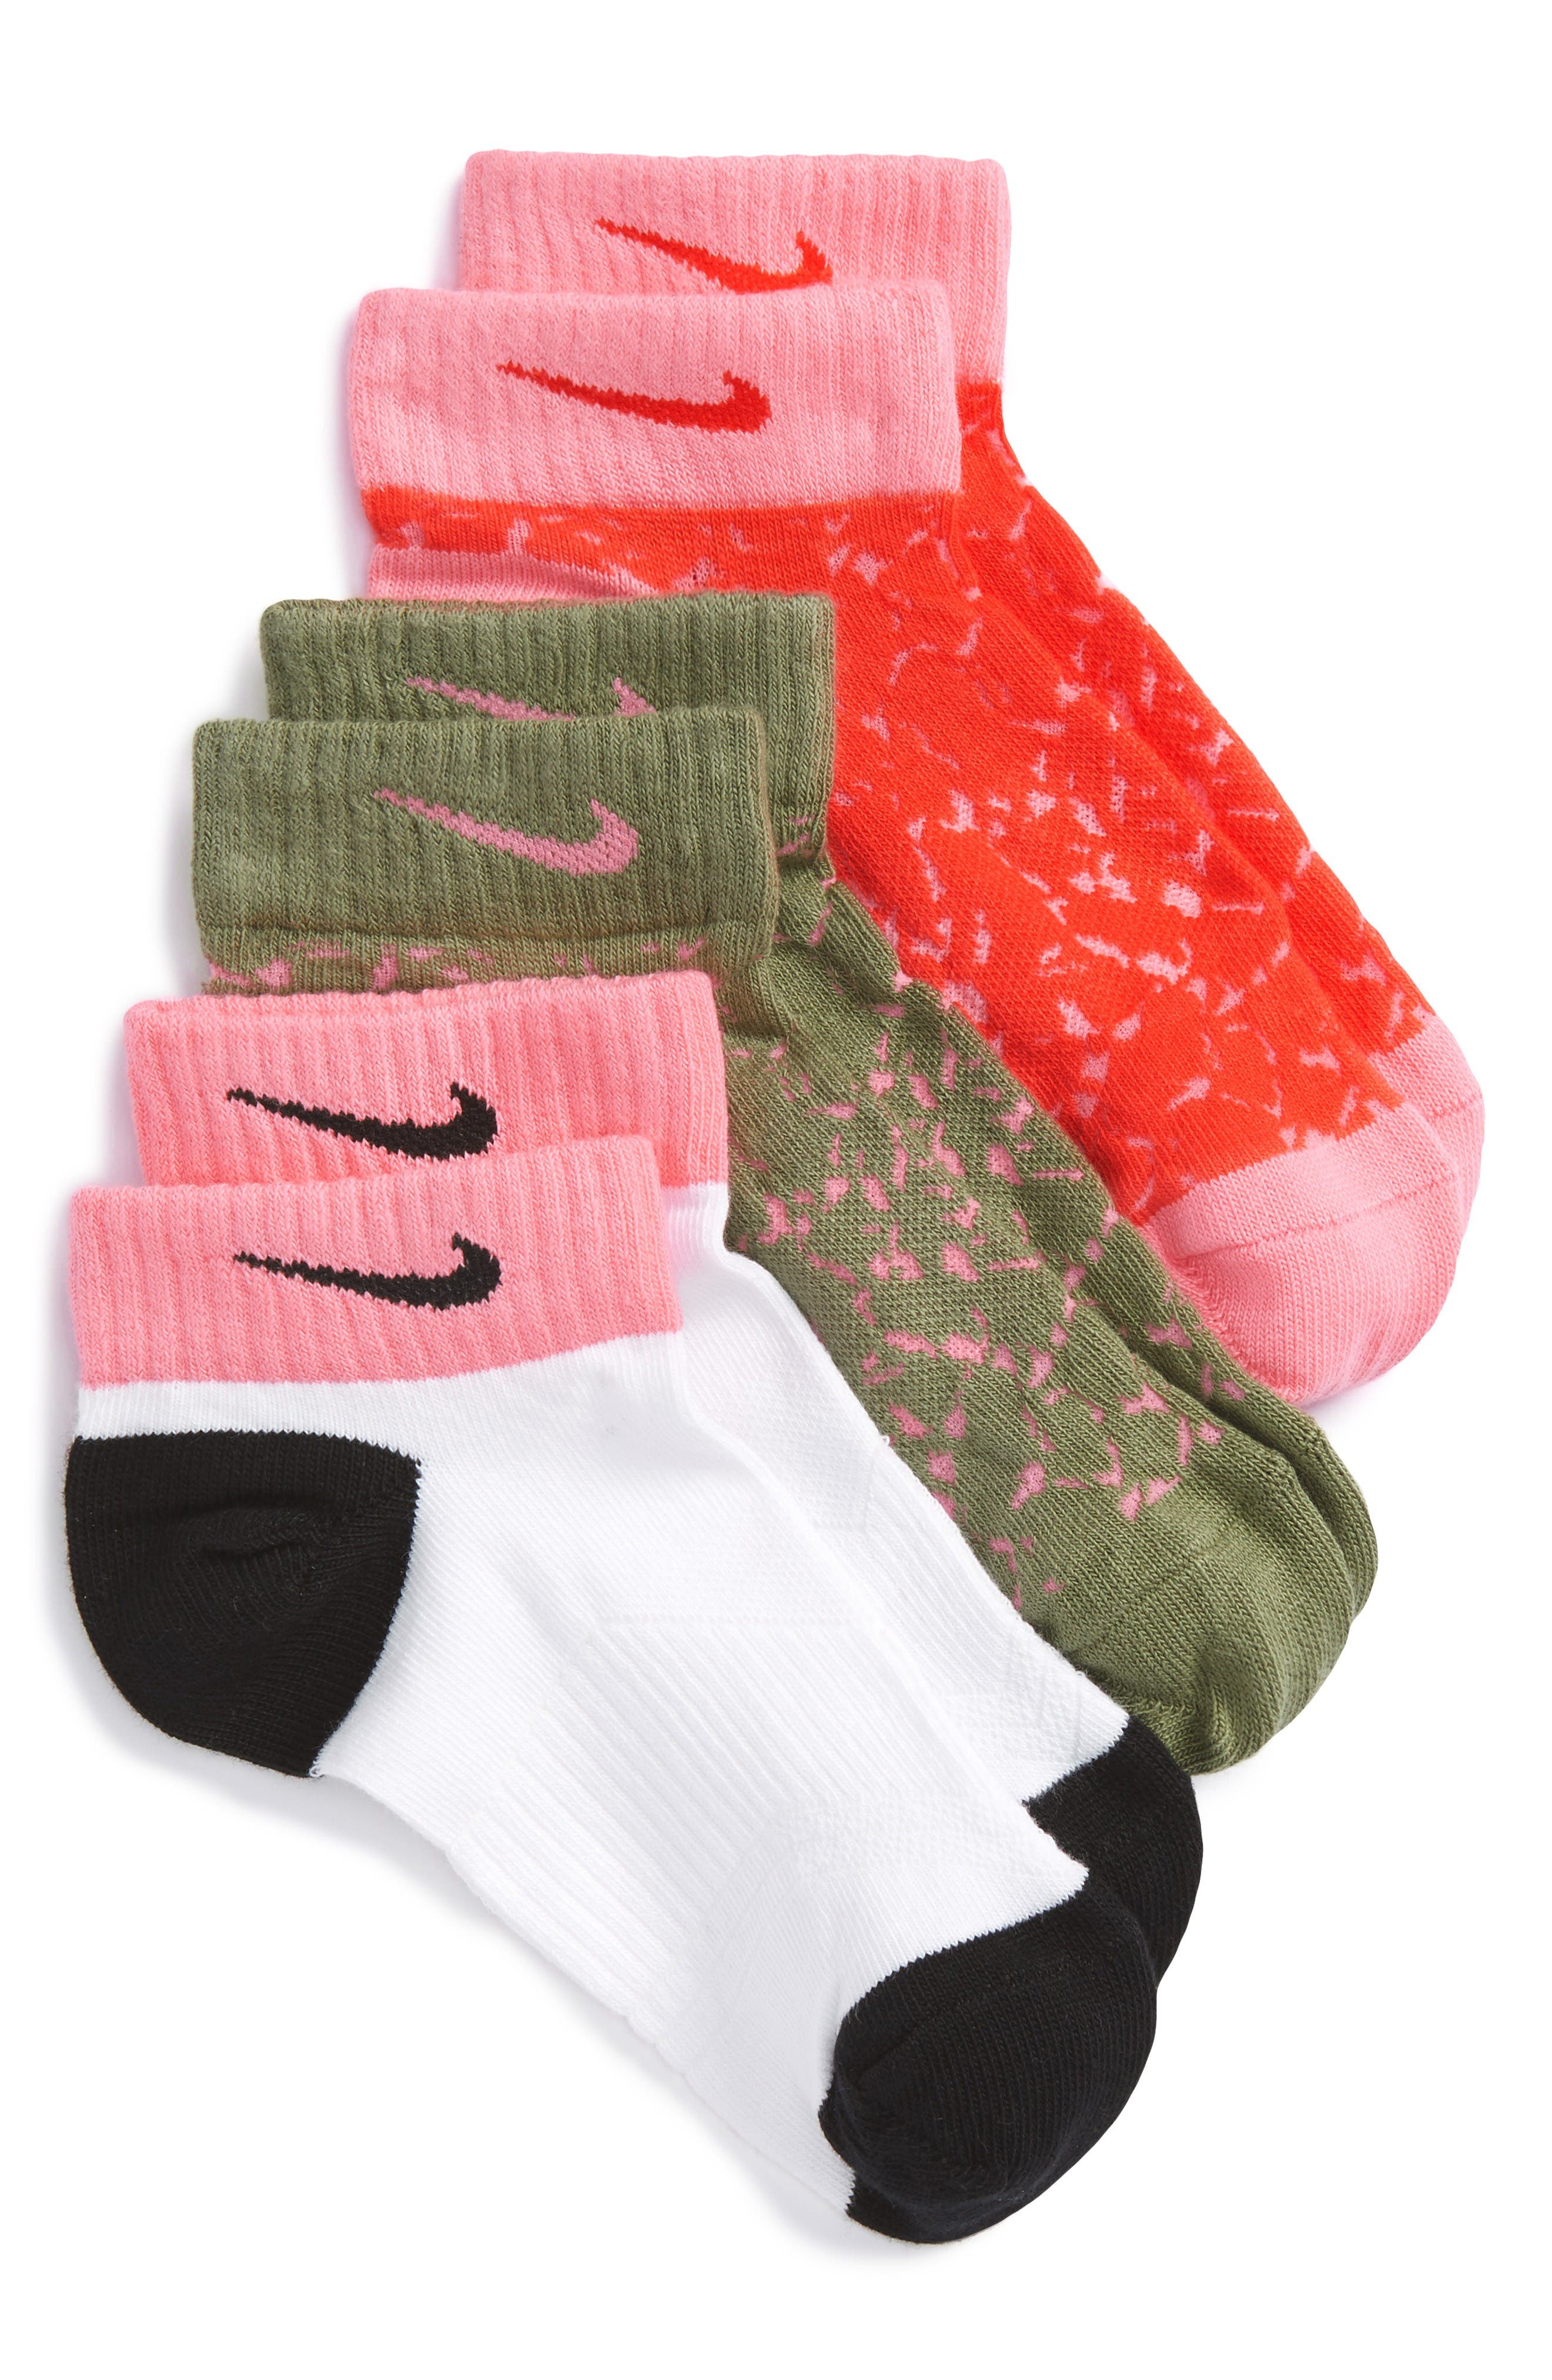 Low Cut Graphic Socks,                         Main,                         color, Pink